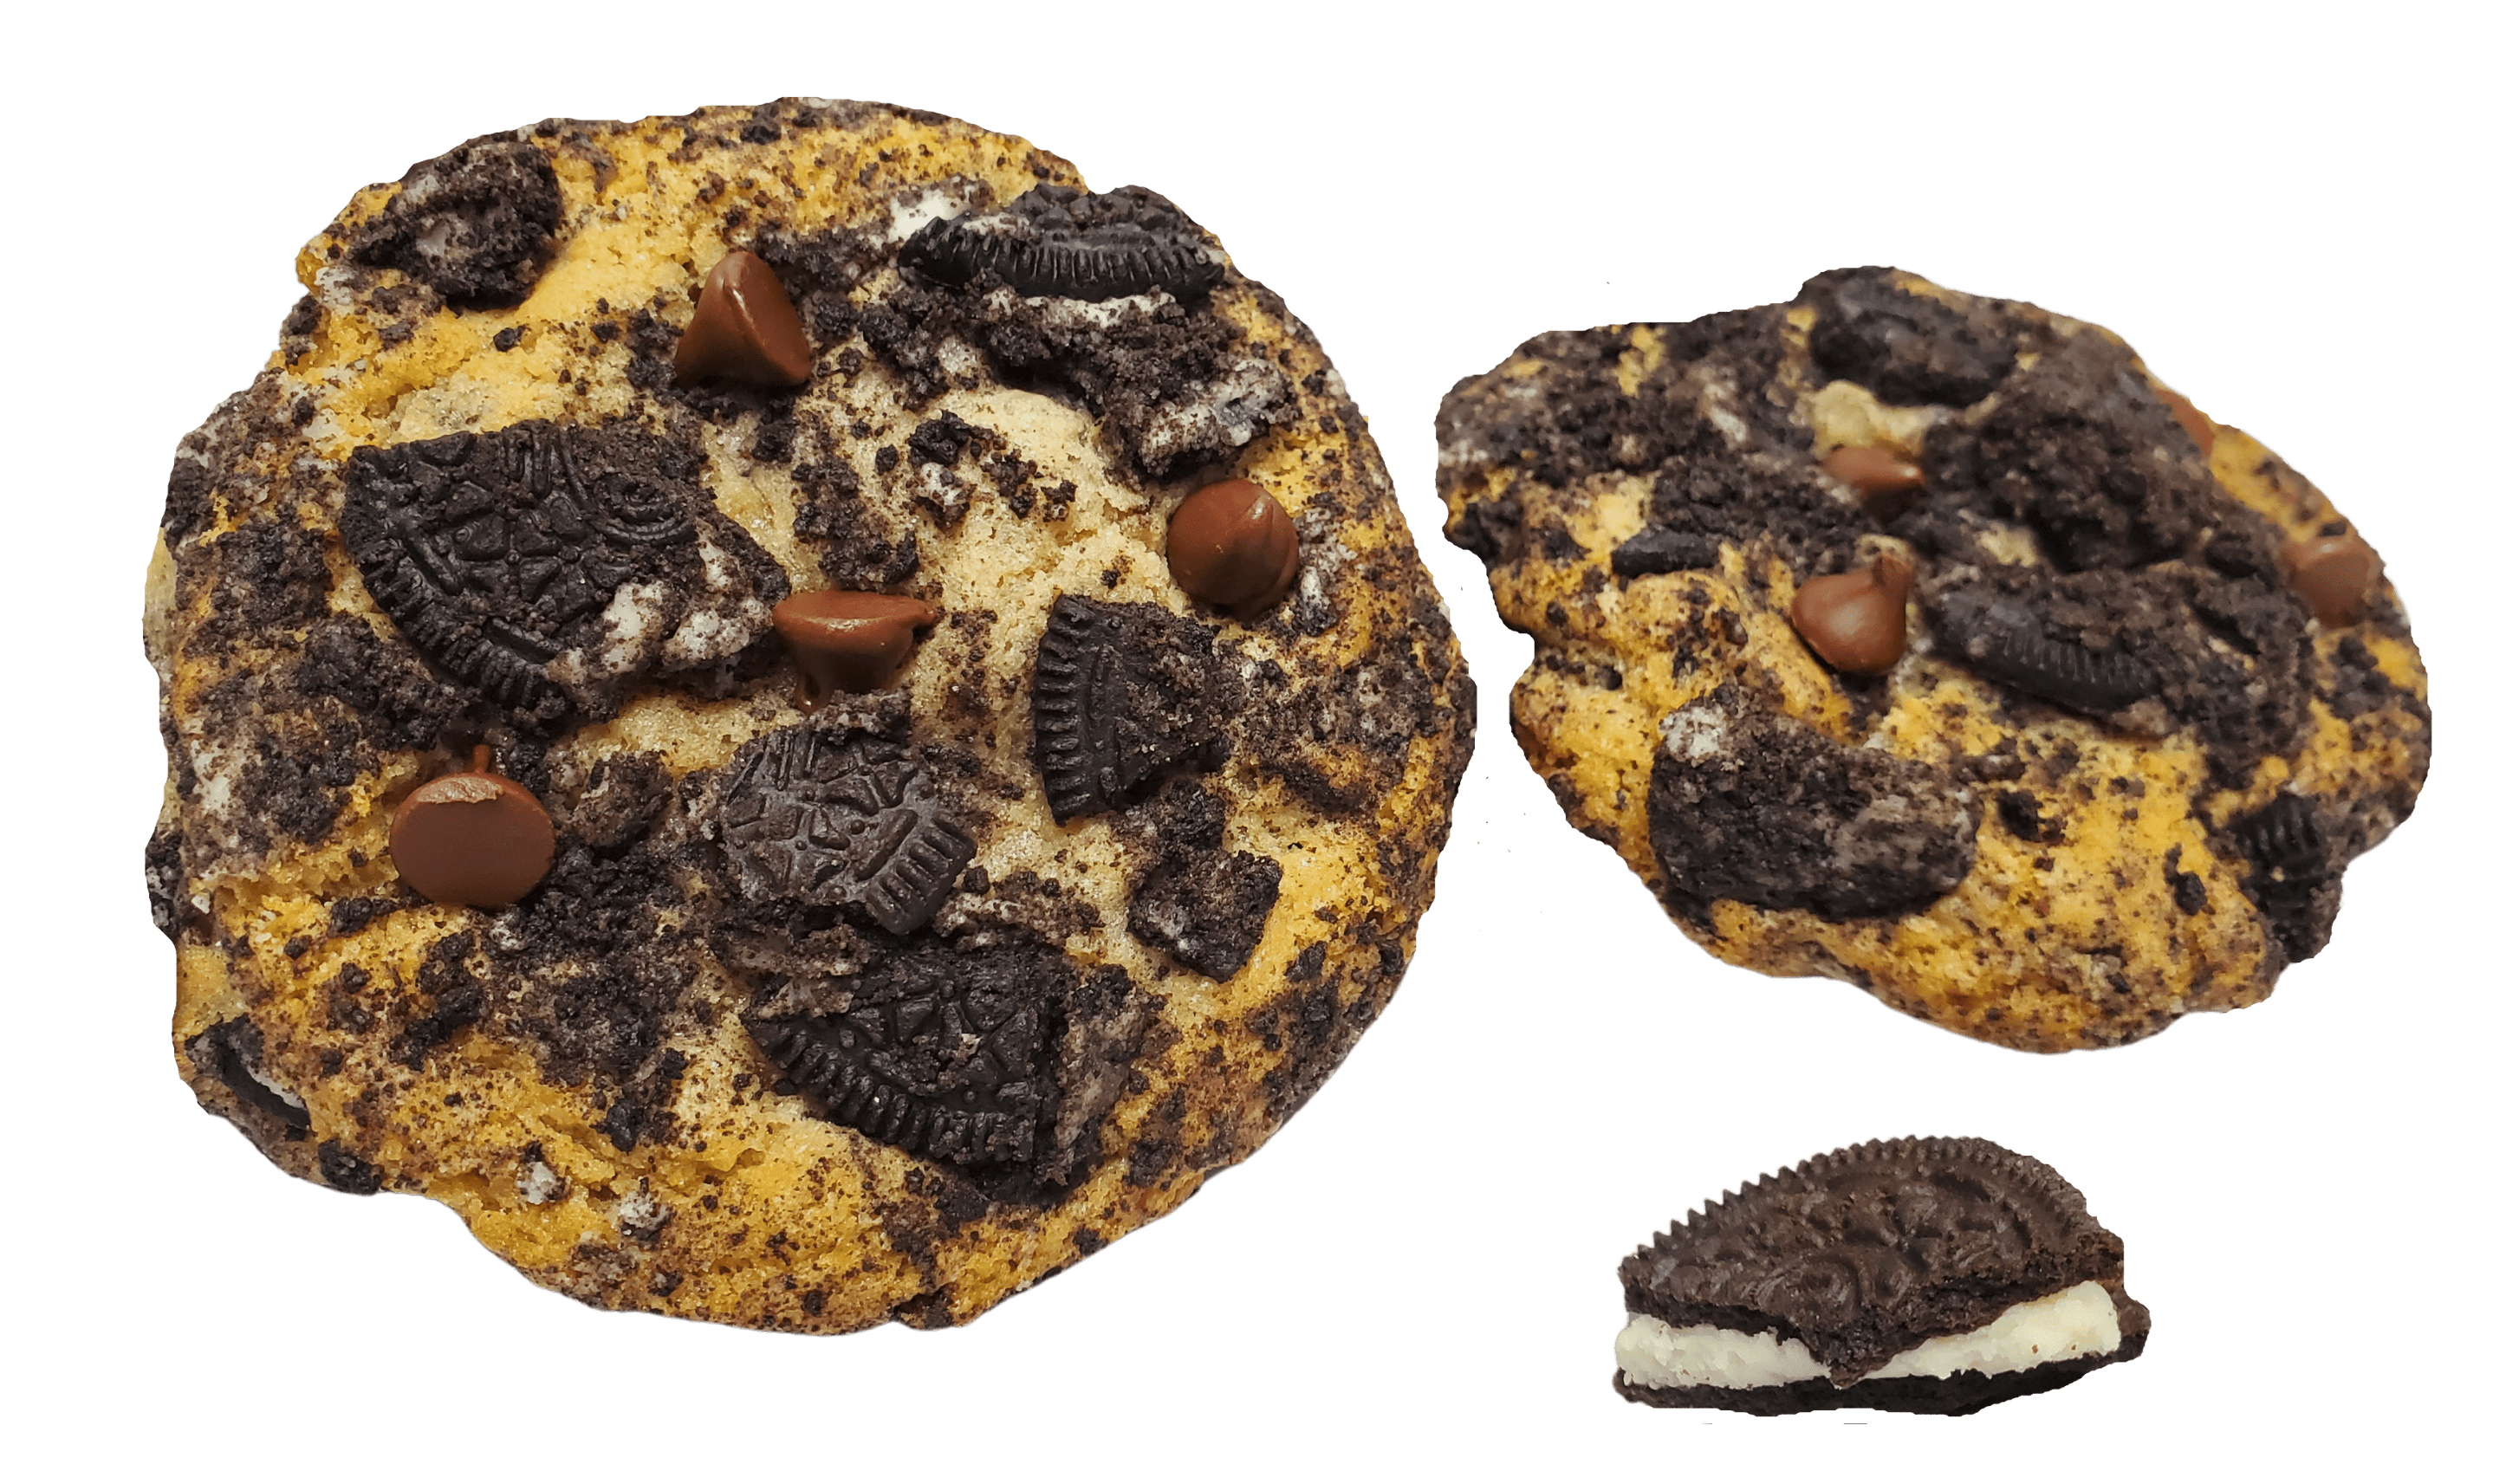 https://i0.wp.com/thewhippedbakery.com/wp-content/uploads/2021/01/Lg-Oreo-Two-Cookies-e1610493215979.png?fit=2892%2C1713&ssl=1